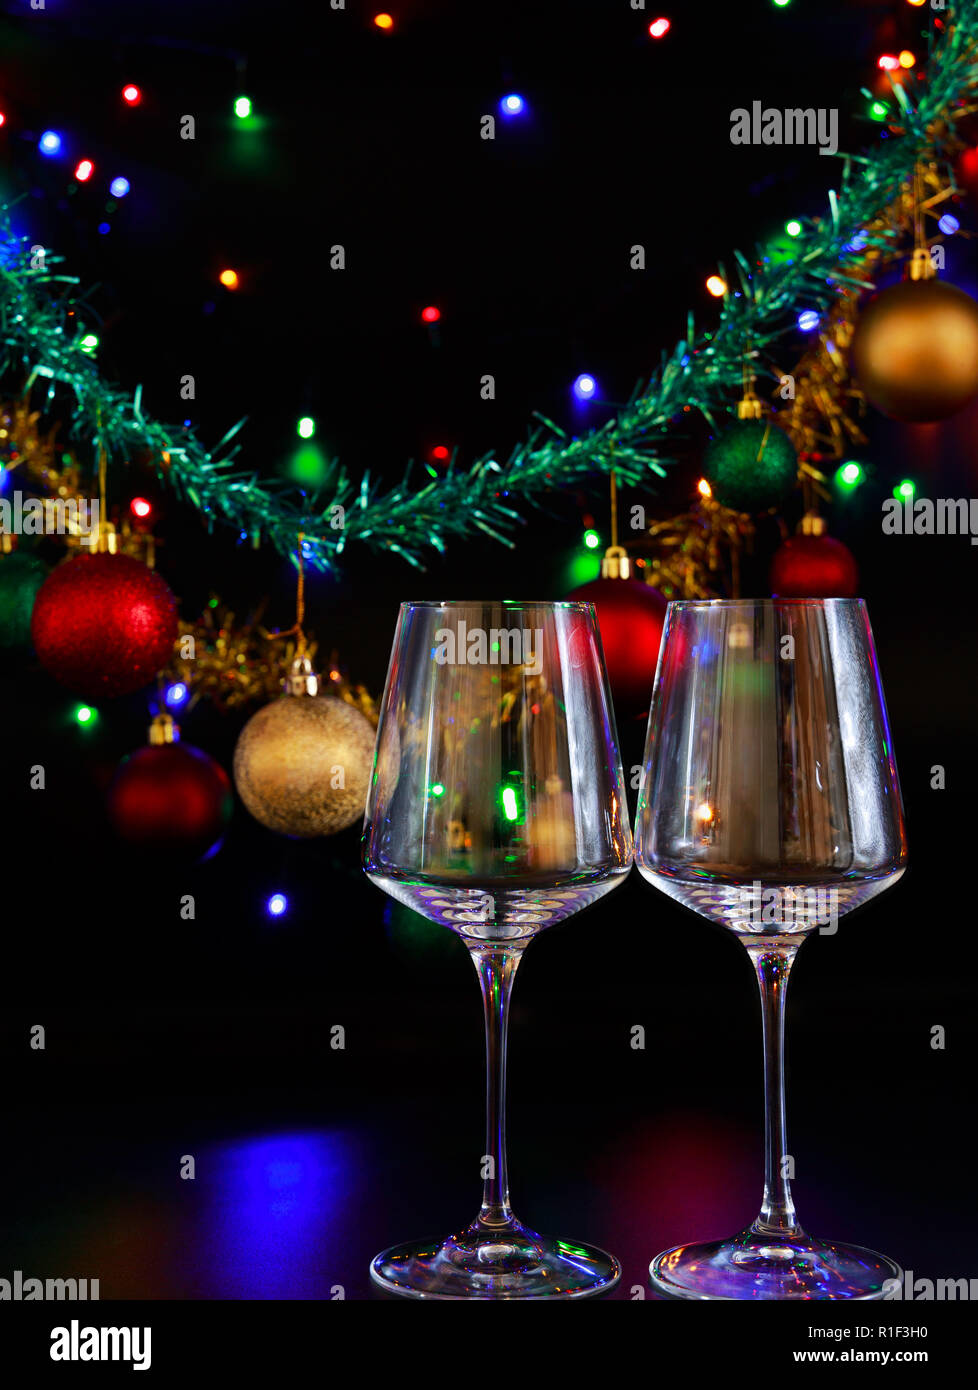 Two Wine Glasses Against A Background Of Colorful Christmas